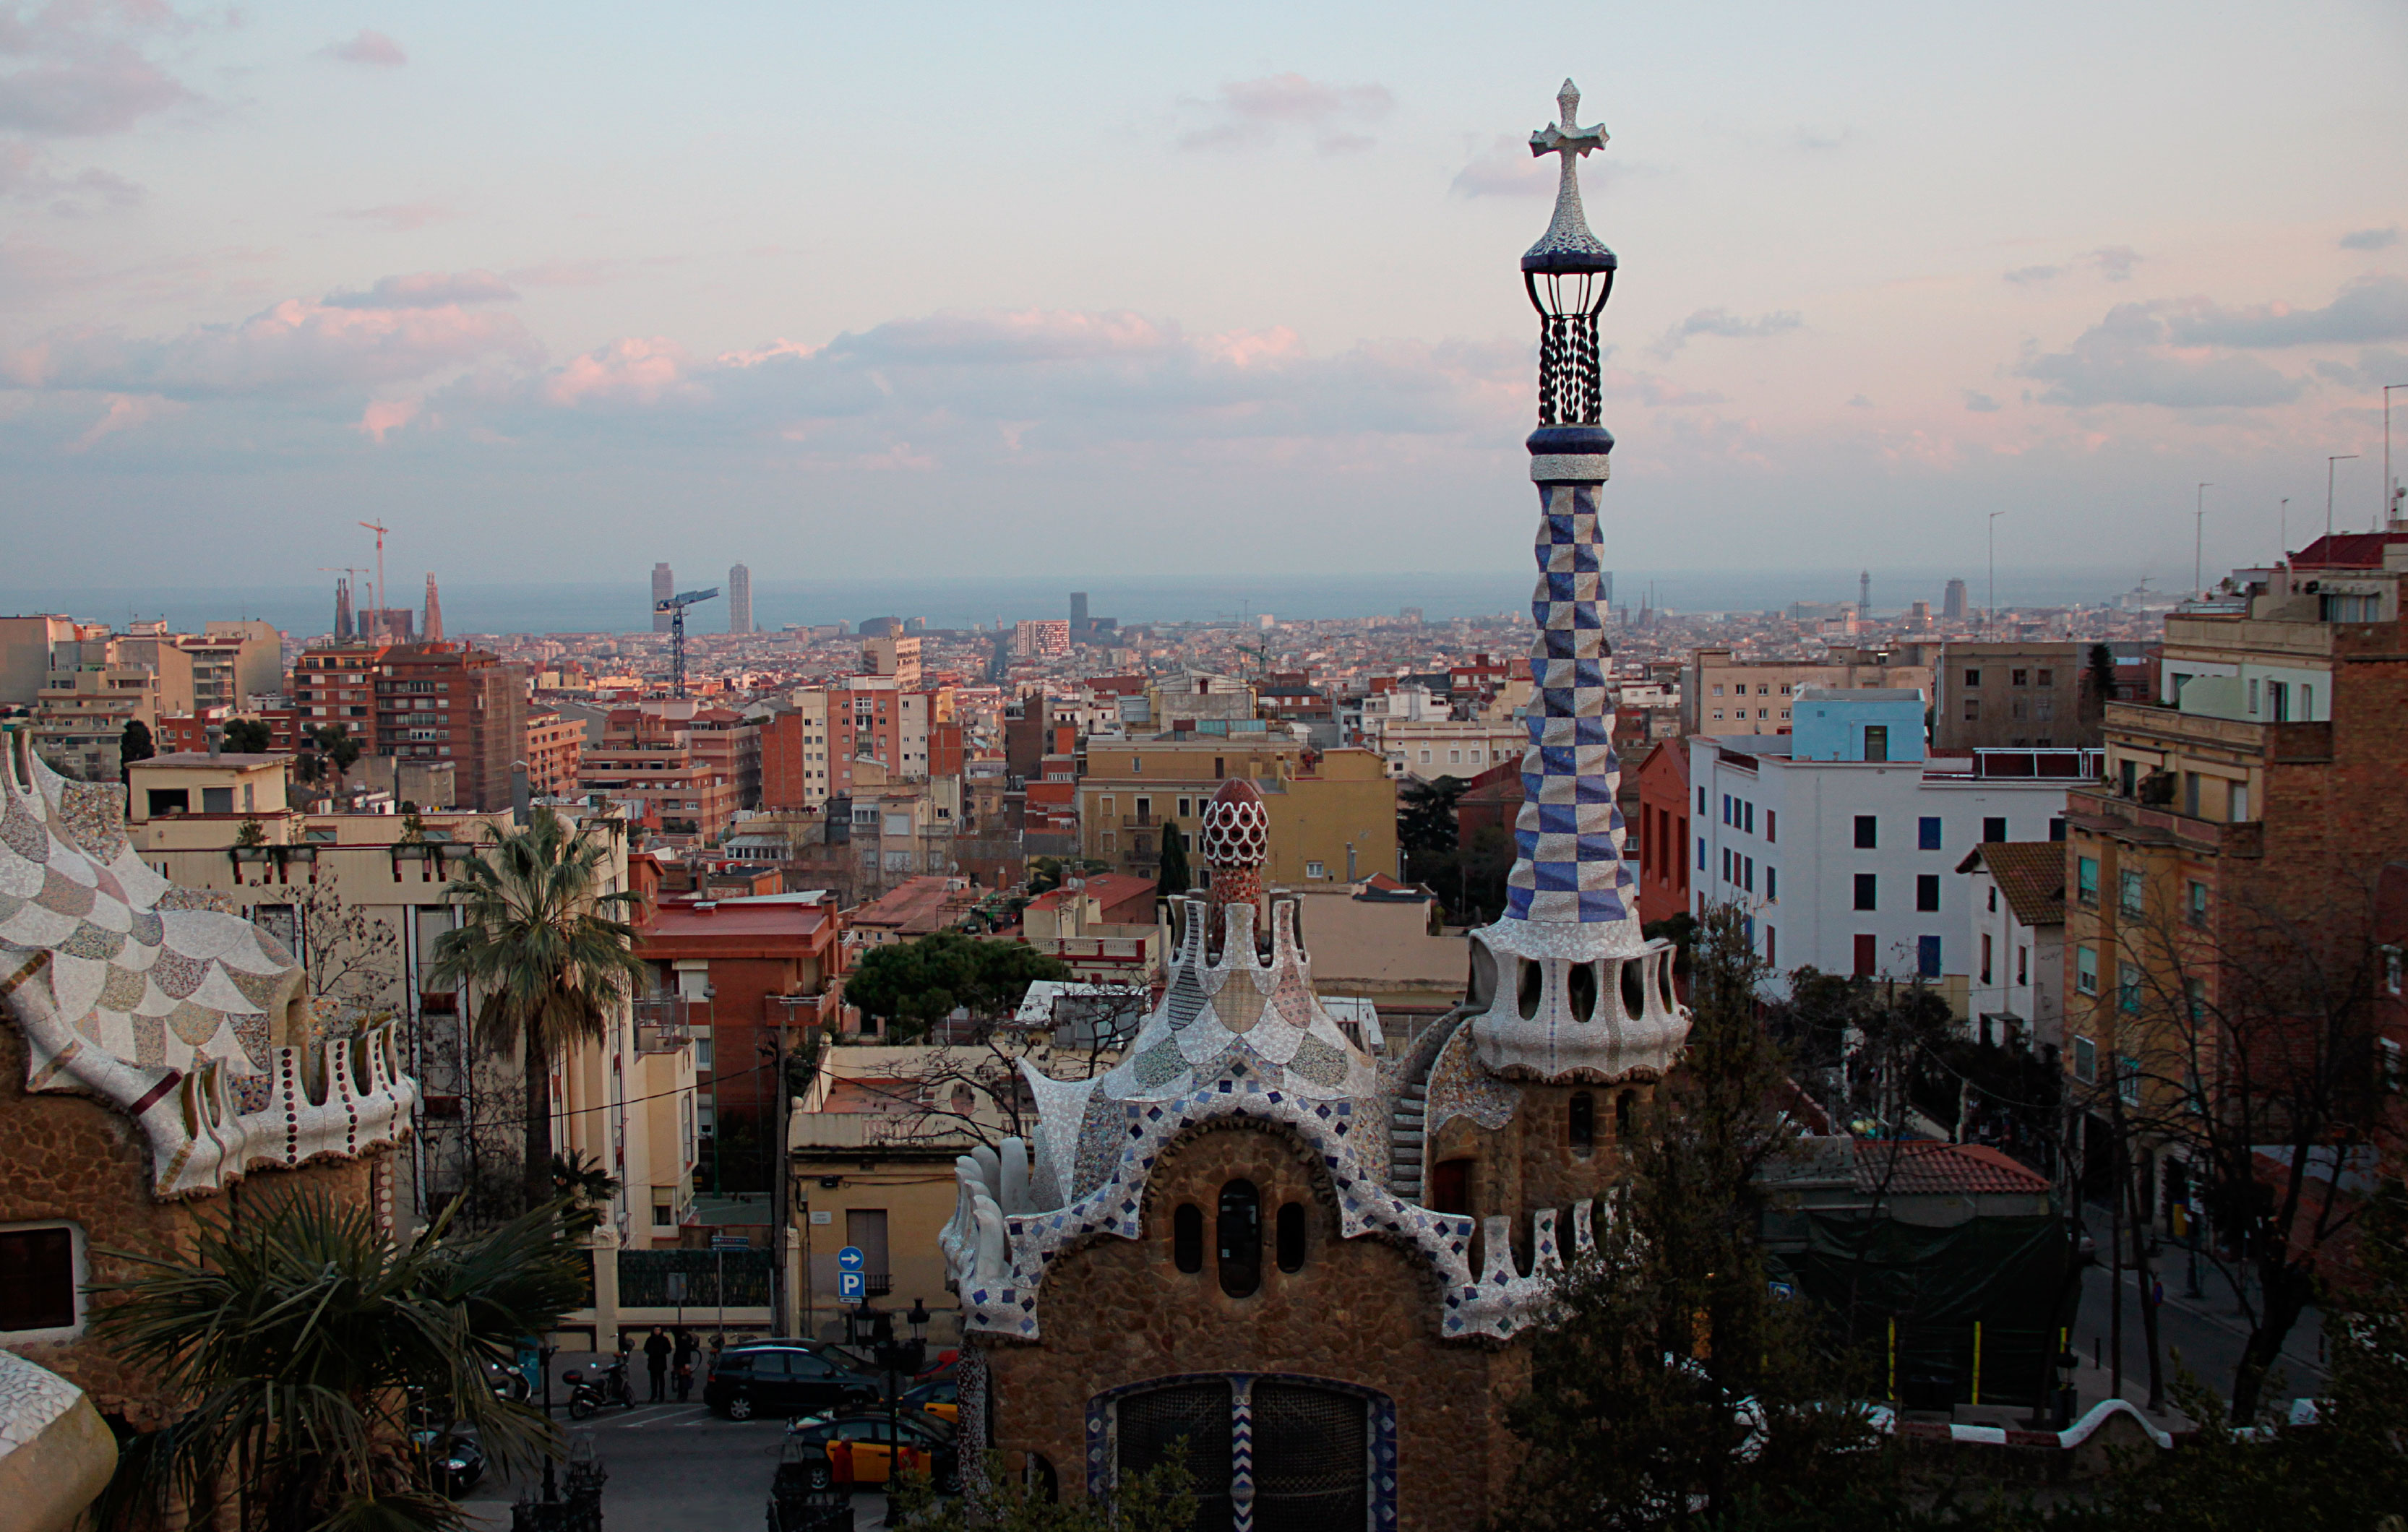 Get to know the city in 2 days with UnPuzzle Barcelona!